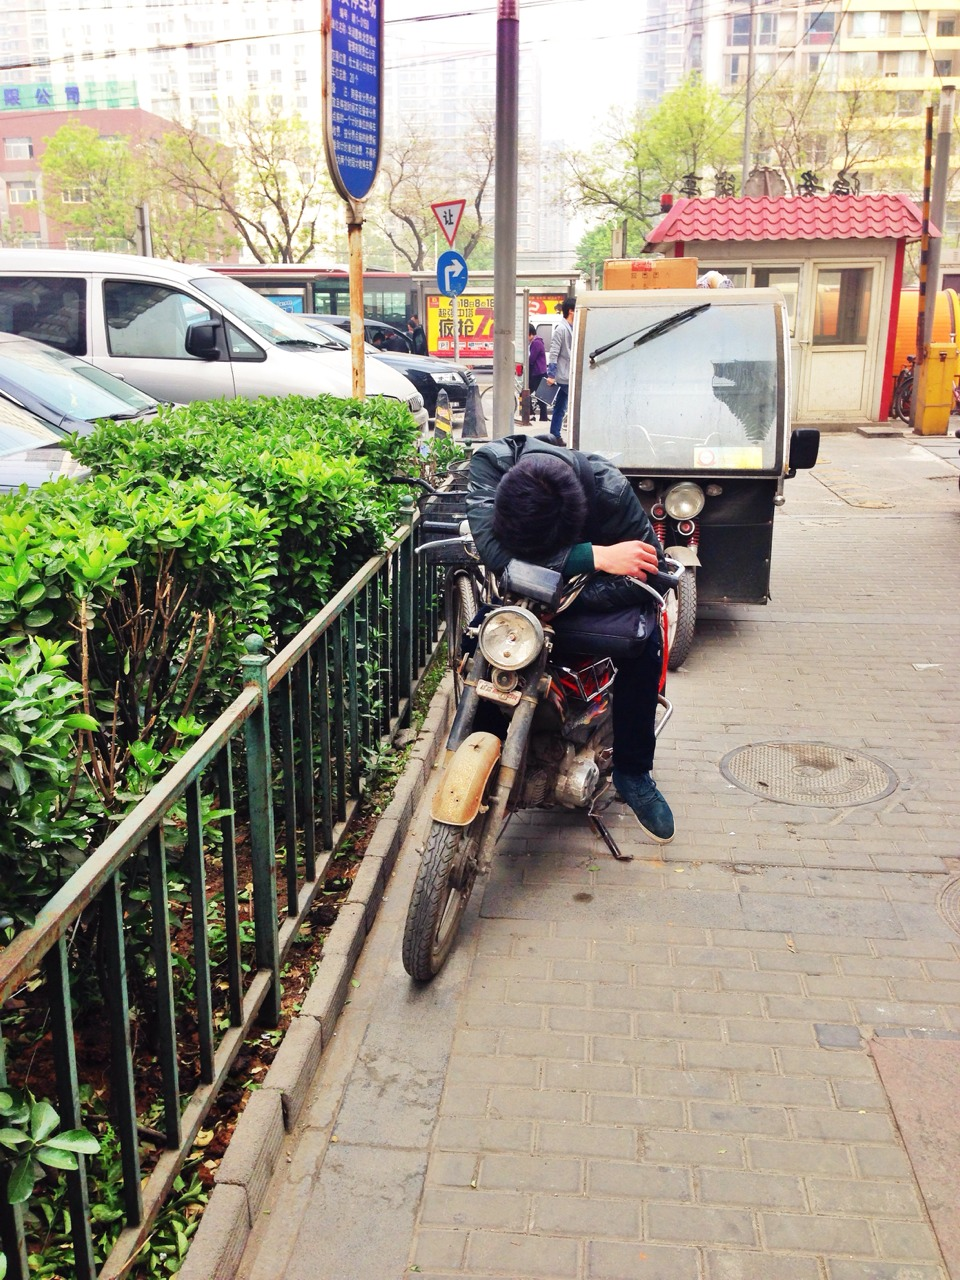 Nothing like an afternoon nap on a motorbike